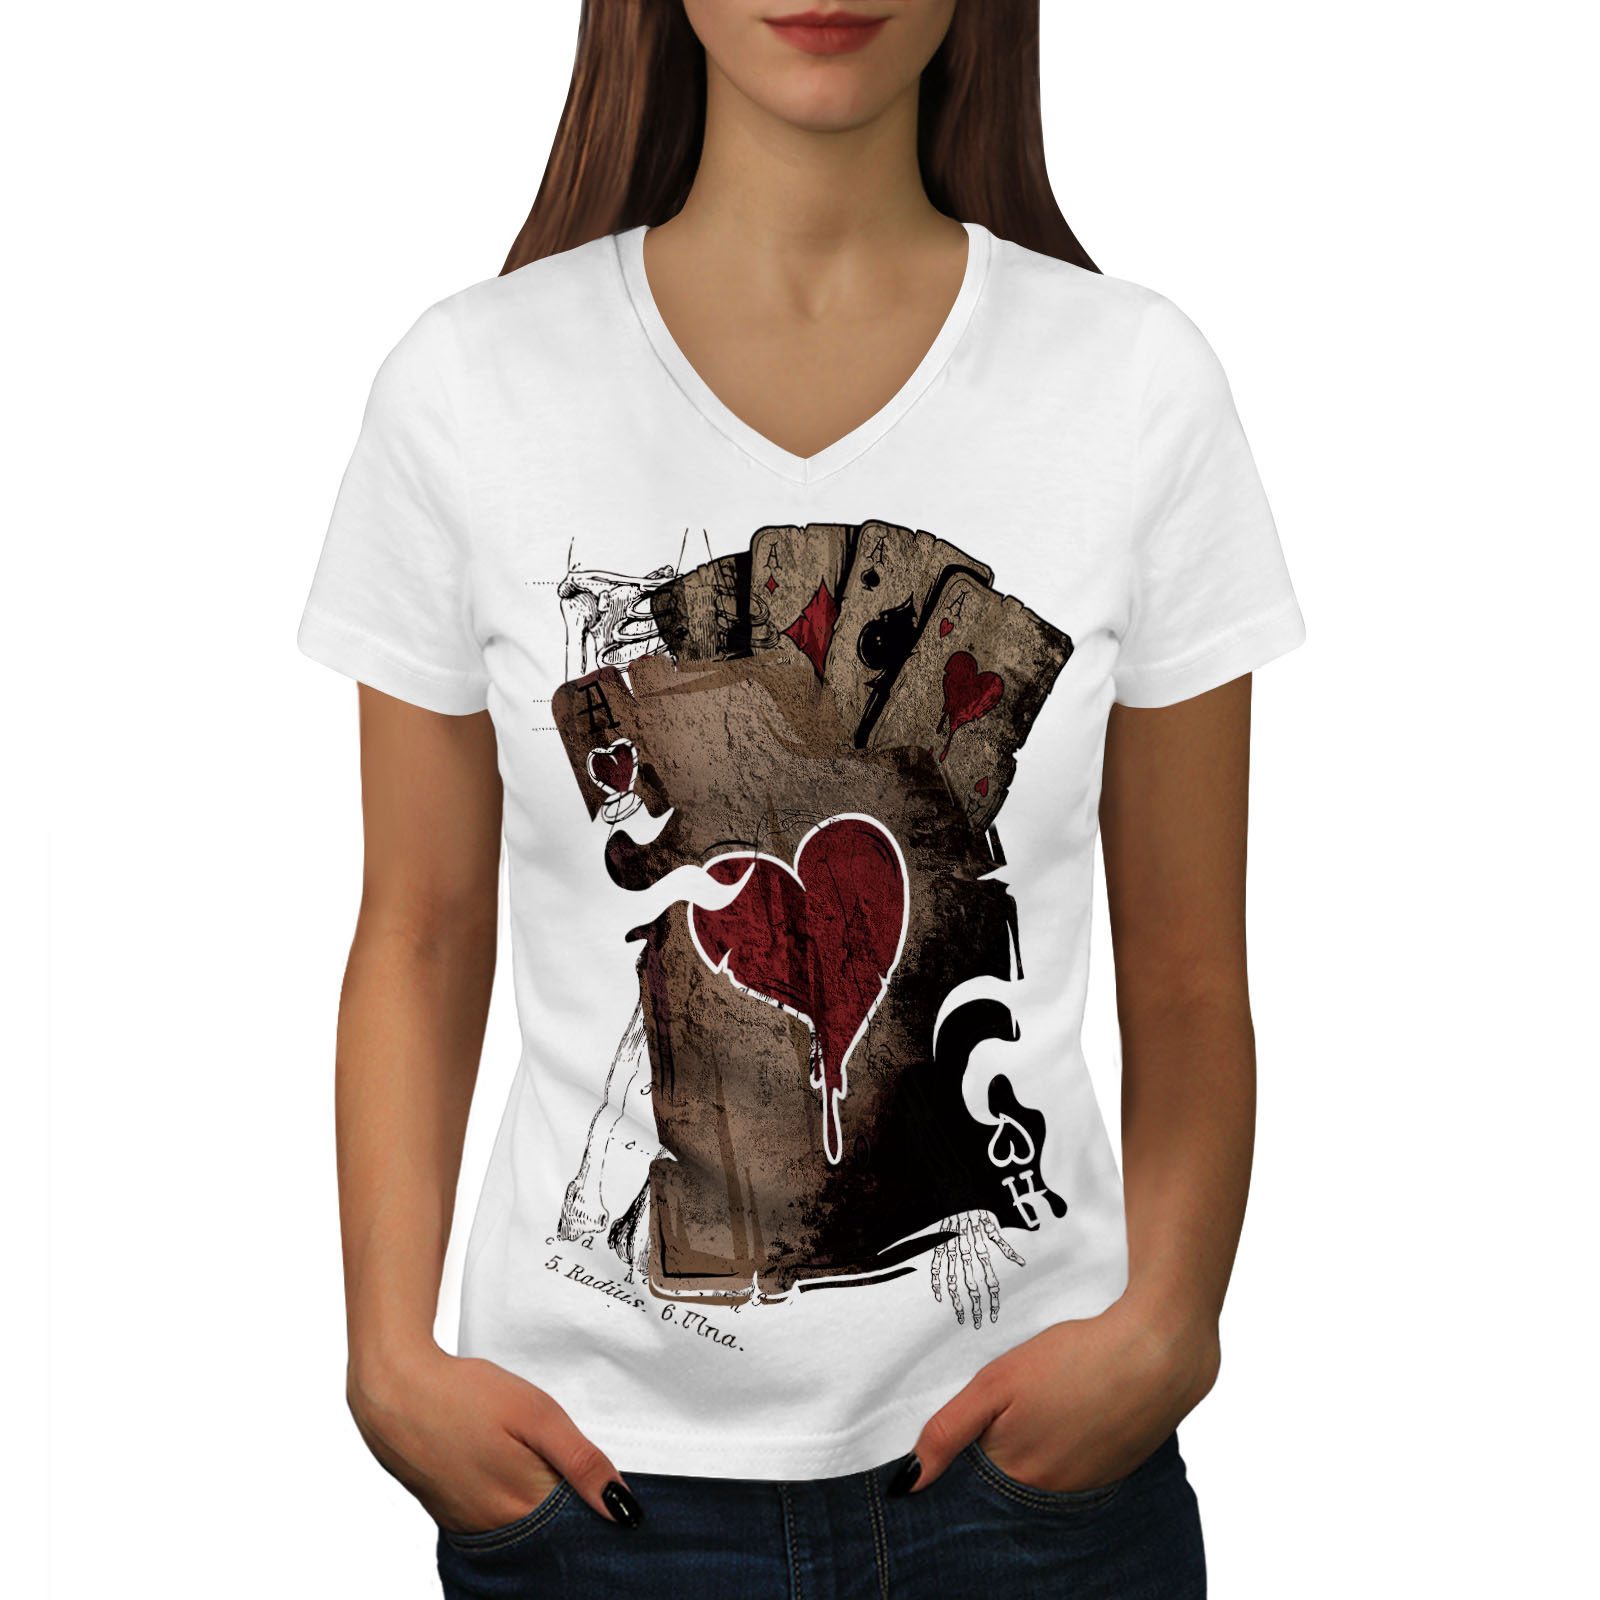 Wellcoda-Poker-Gamble-Squelette-Femme-T-Shirt-col-V-effrayant-conception-graphique-Tee